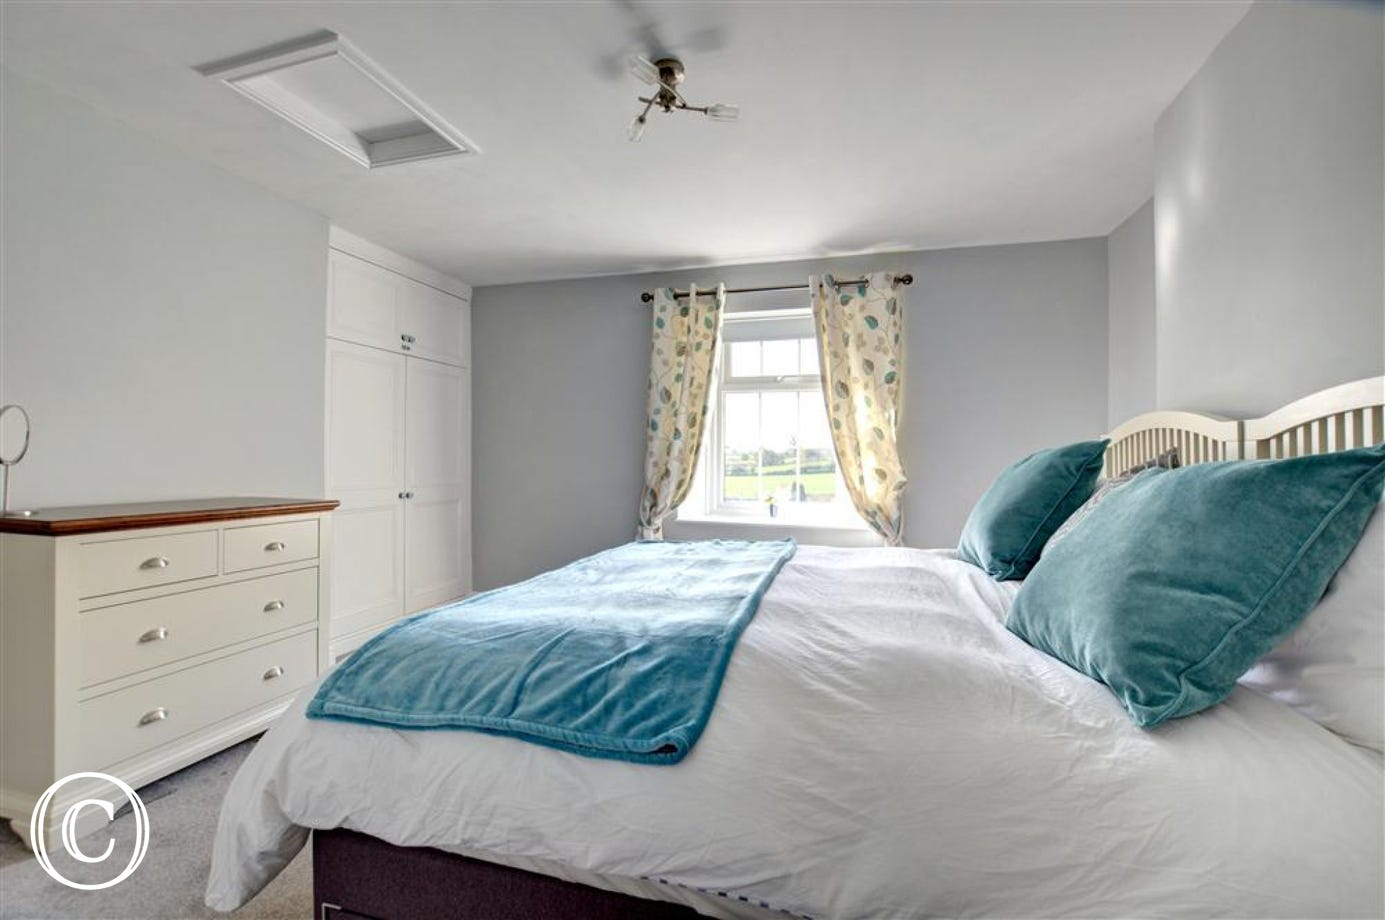 The master bedroom has a super king or twin beds.